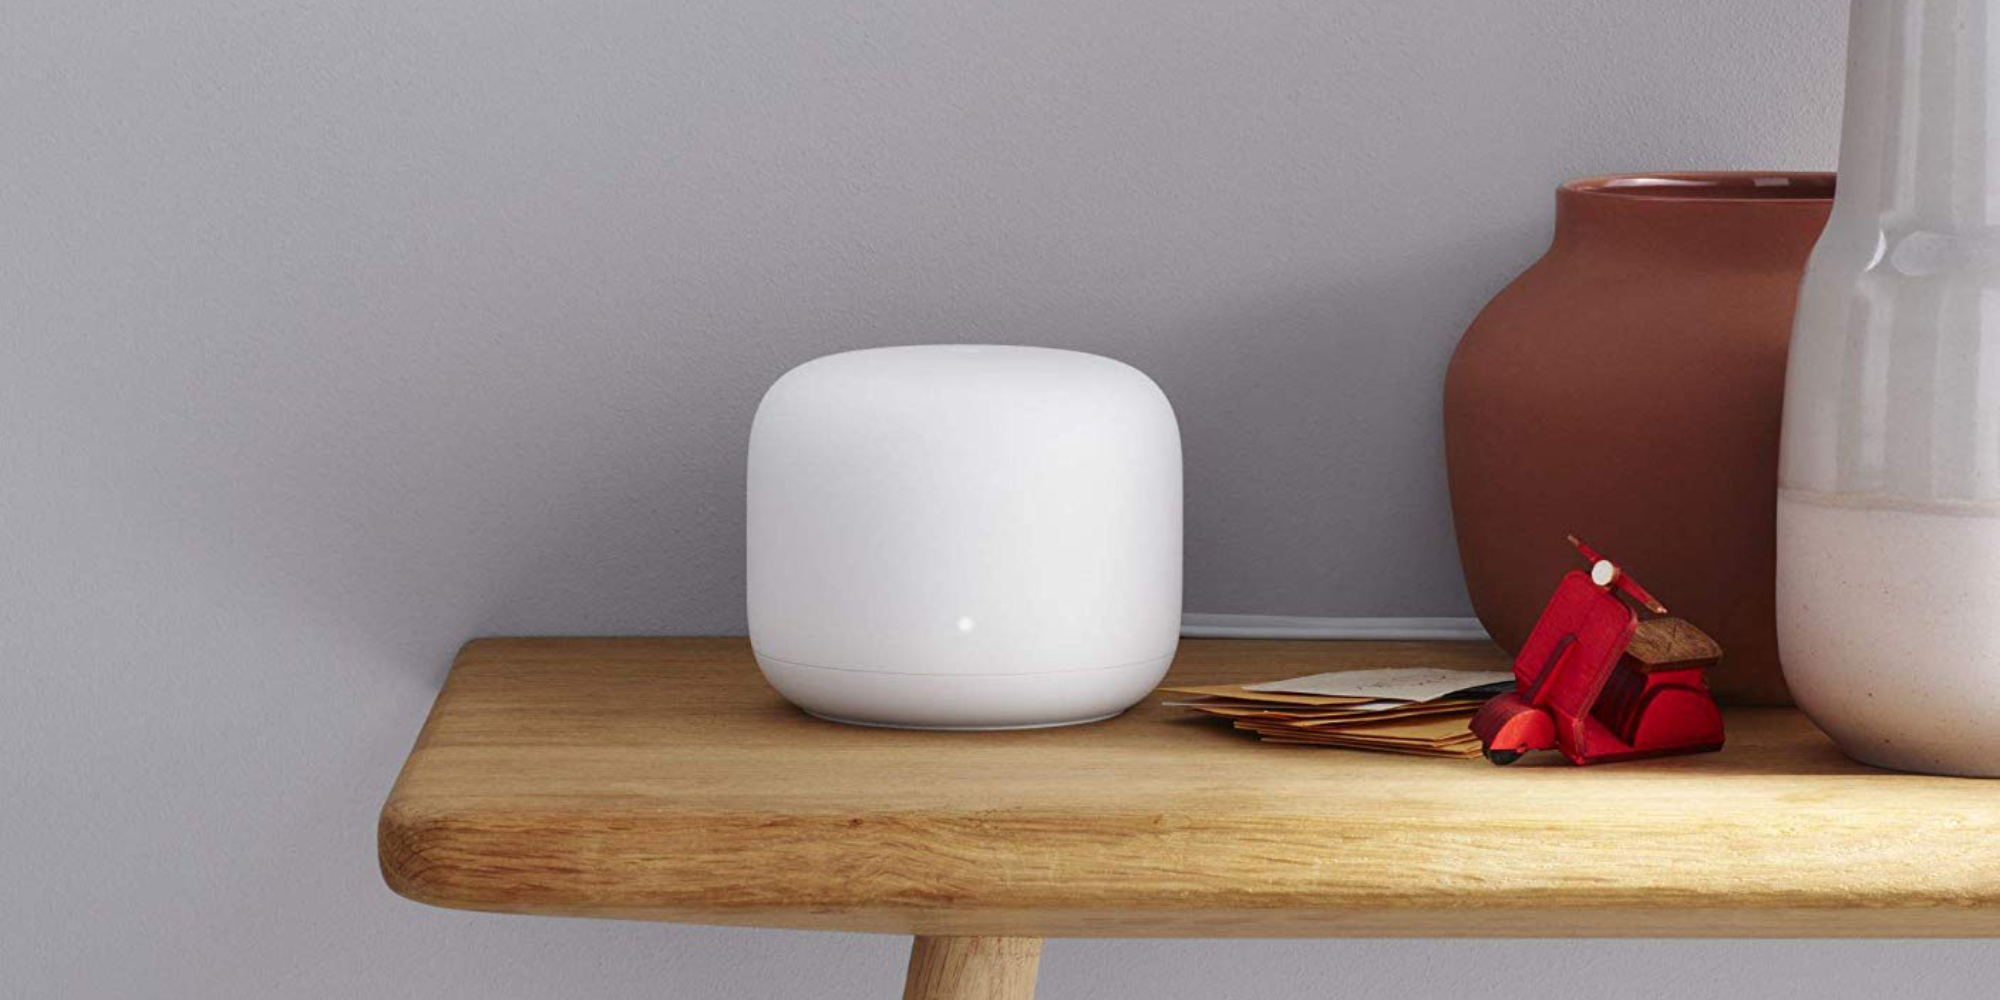 Latest Google Nest Wifi 3-node mesh system hits $280 (Save $69+), more from $15 - 9to5Toys